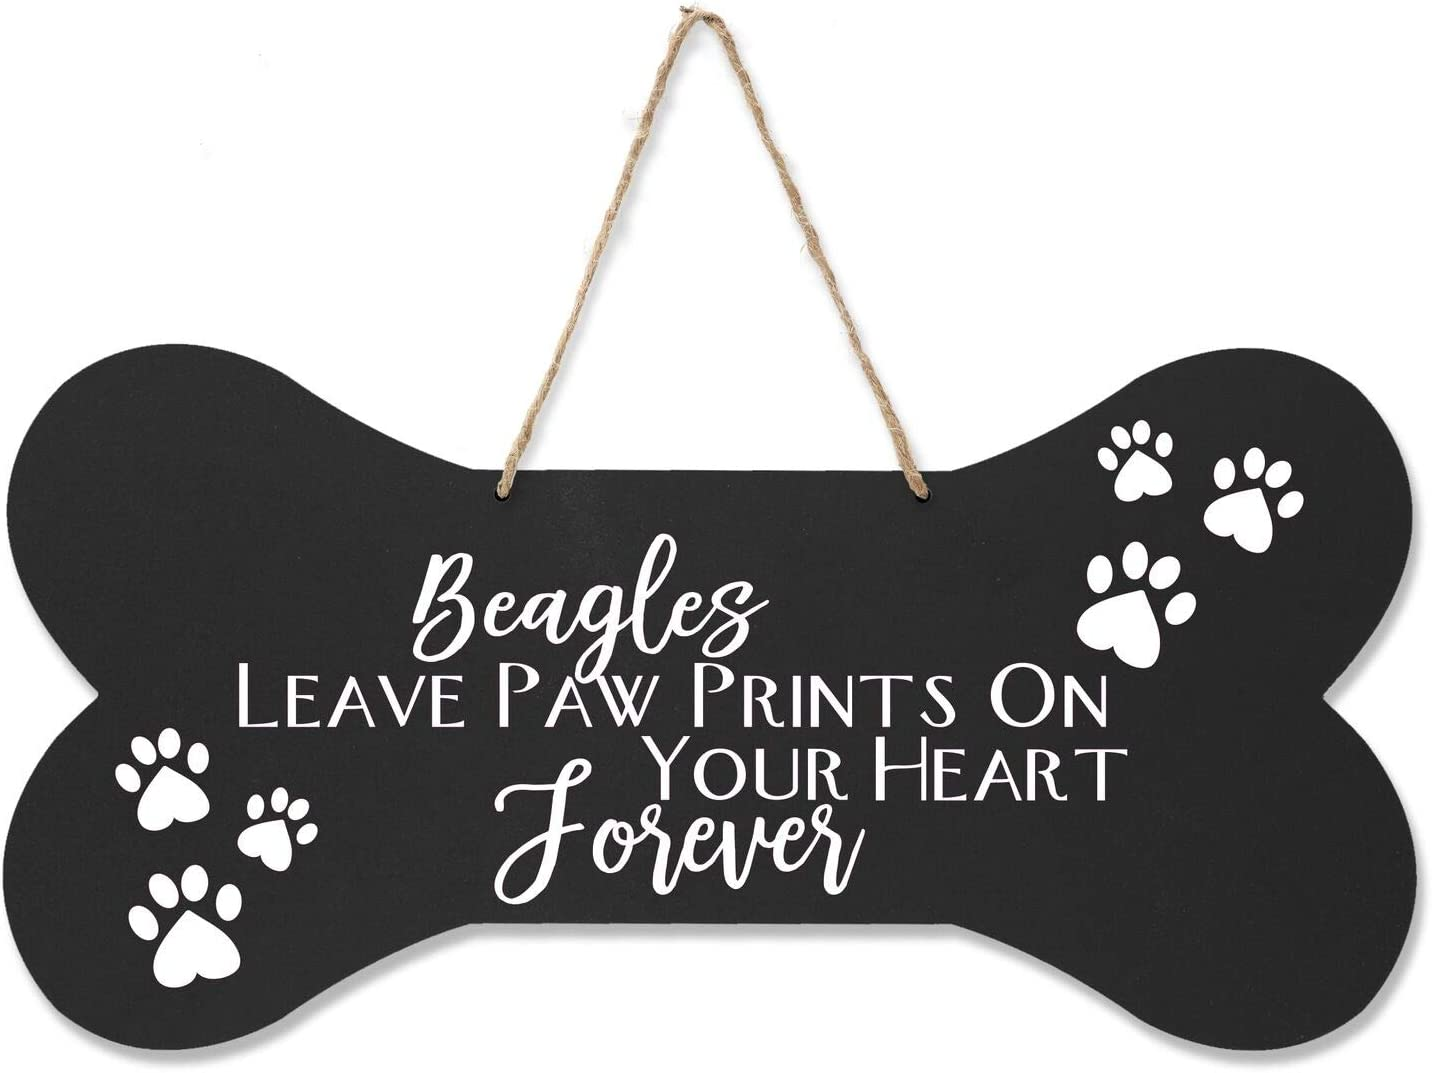 """LifeSong Milestones Beagle Pet Quote Dog Bone Wall Hanging Sign, Dog Lovers Gifts for Women, Dog Owner Gift for Home Decor, 8"""" x 16"""" (Black Leave Paw Prints)"""